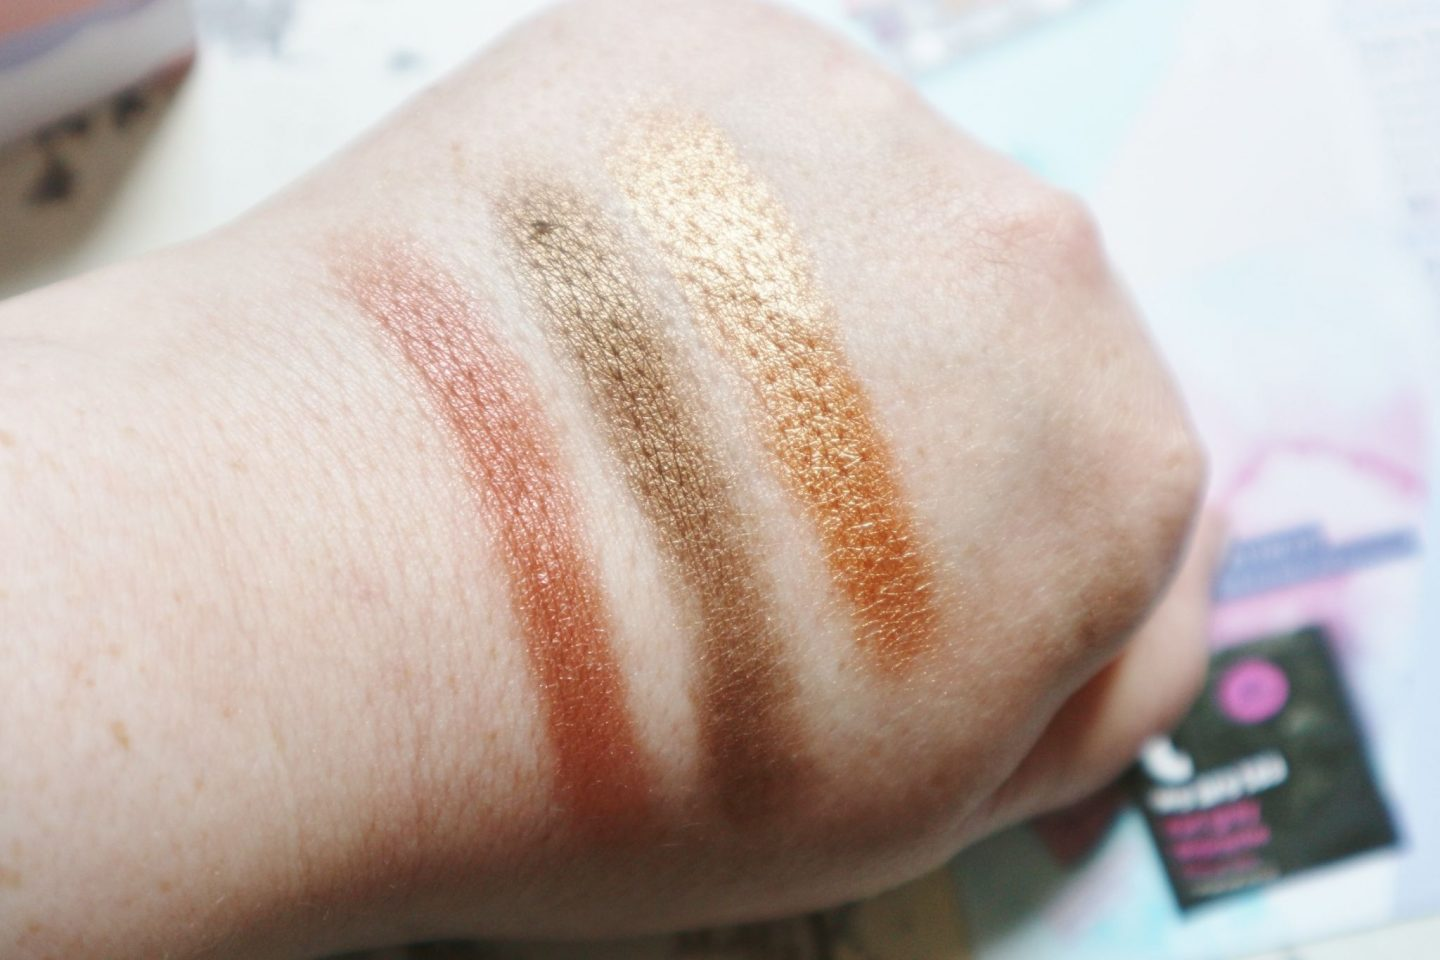 Trifle Cosmetics Praline Palette swatches